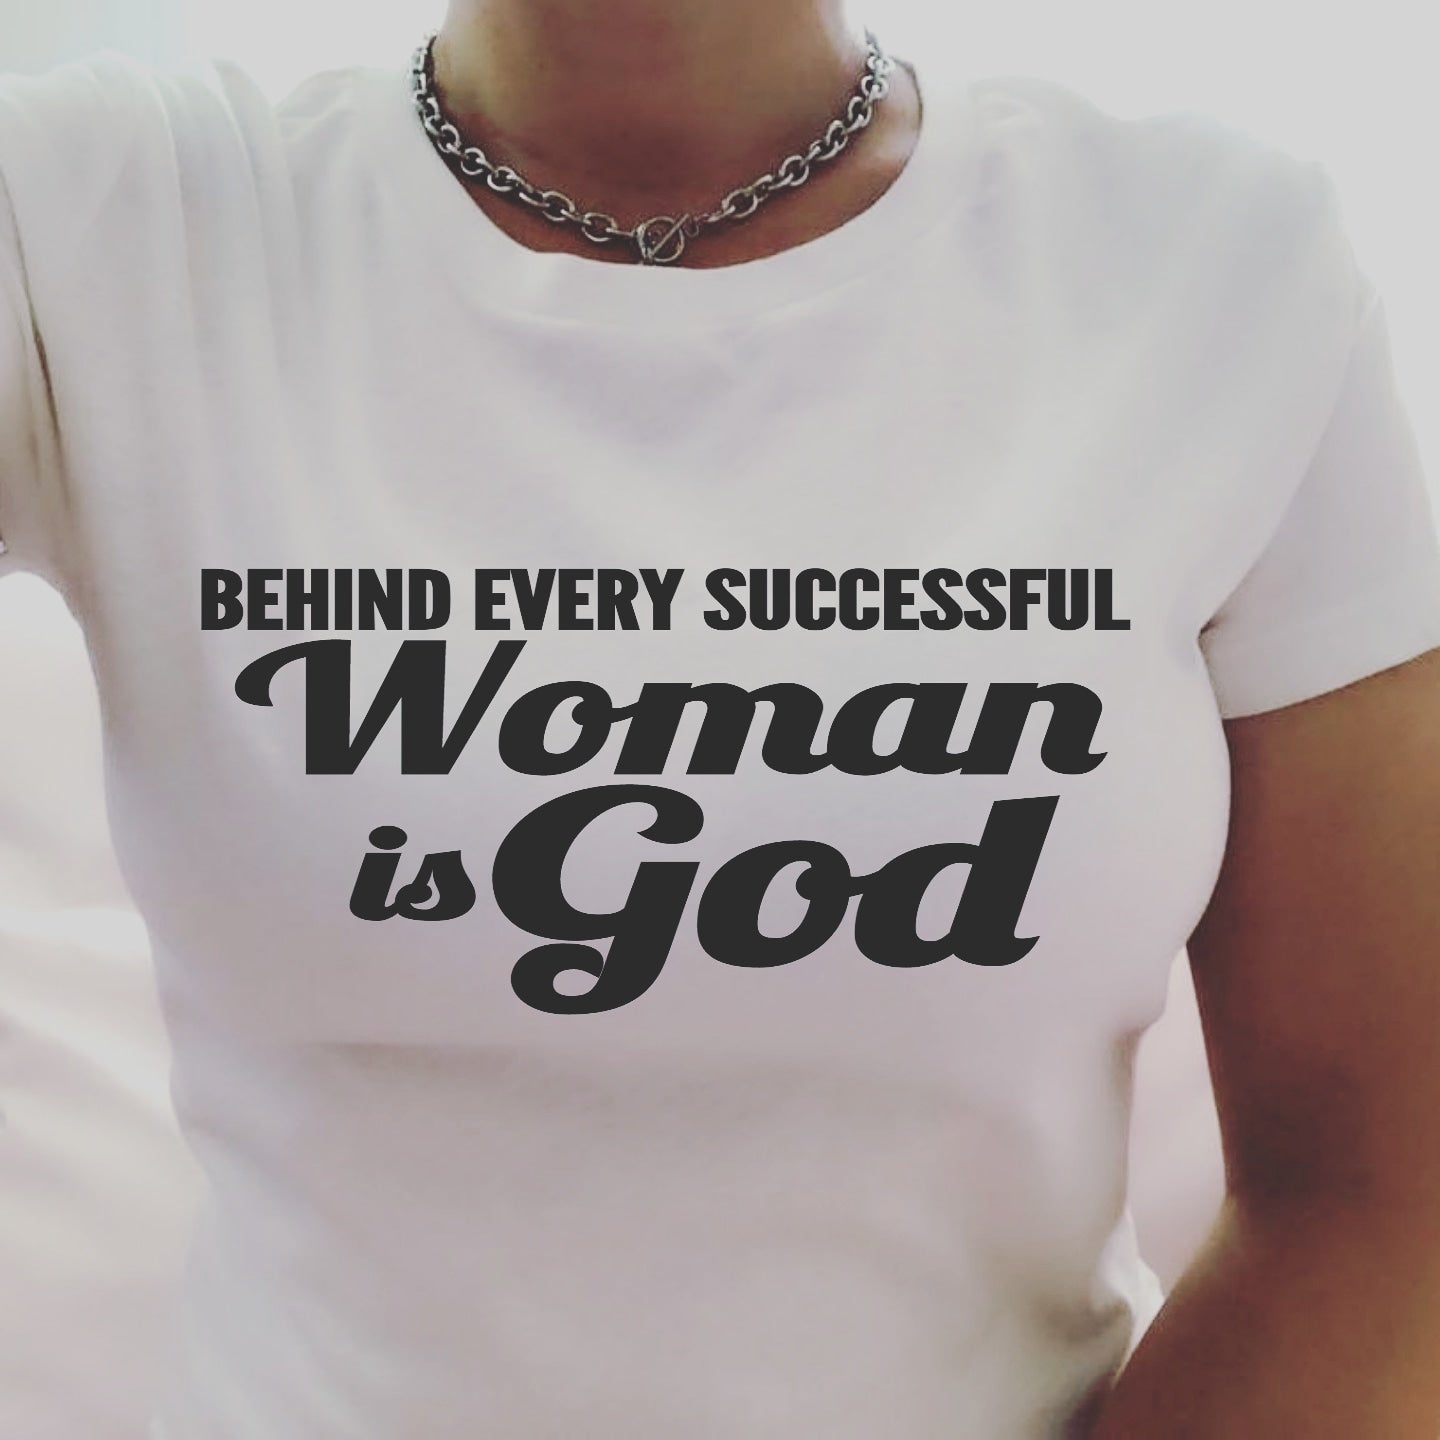 Behind Every Successful Women is God